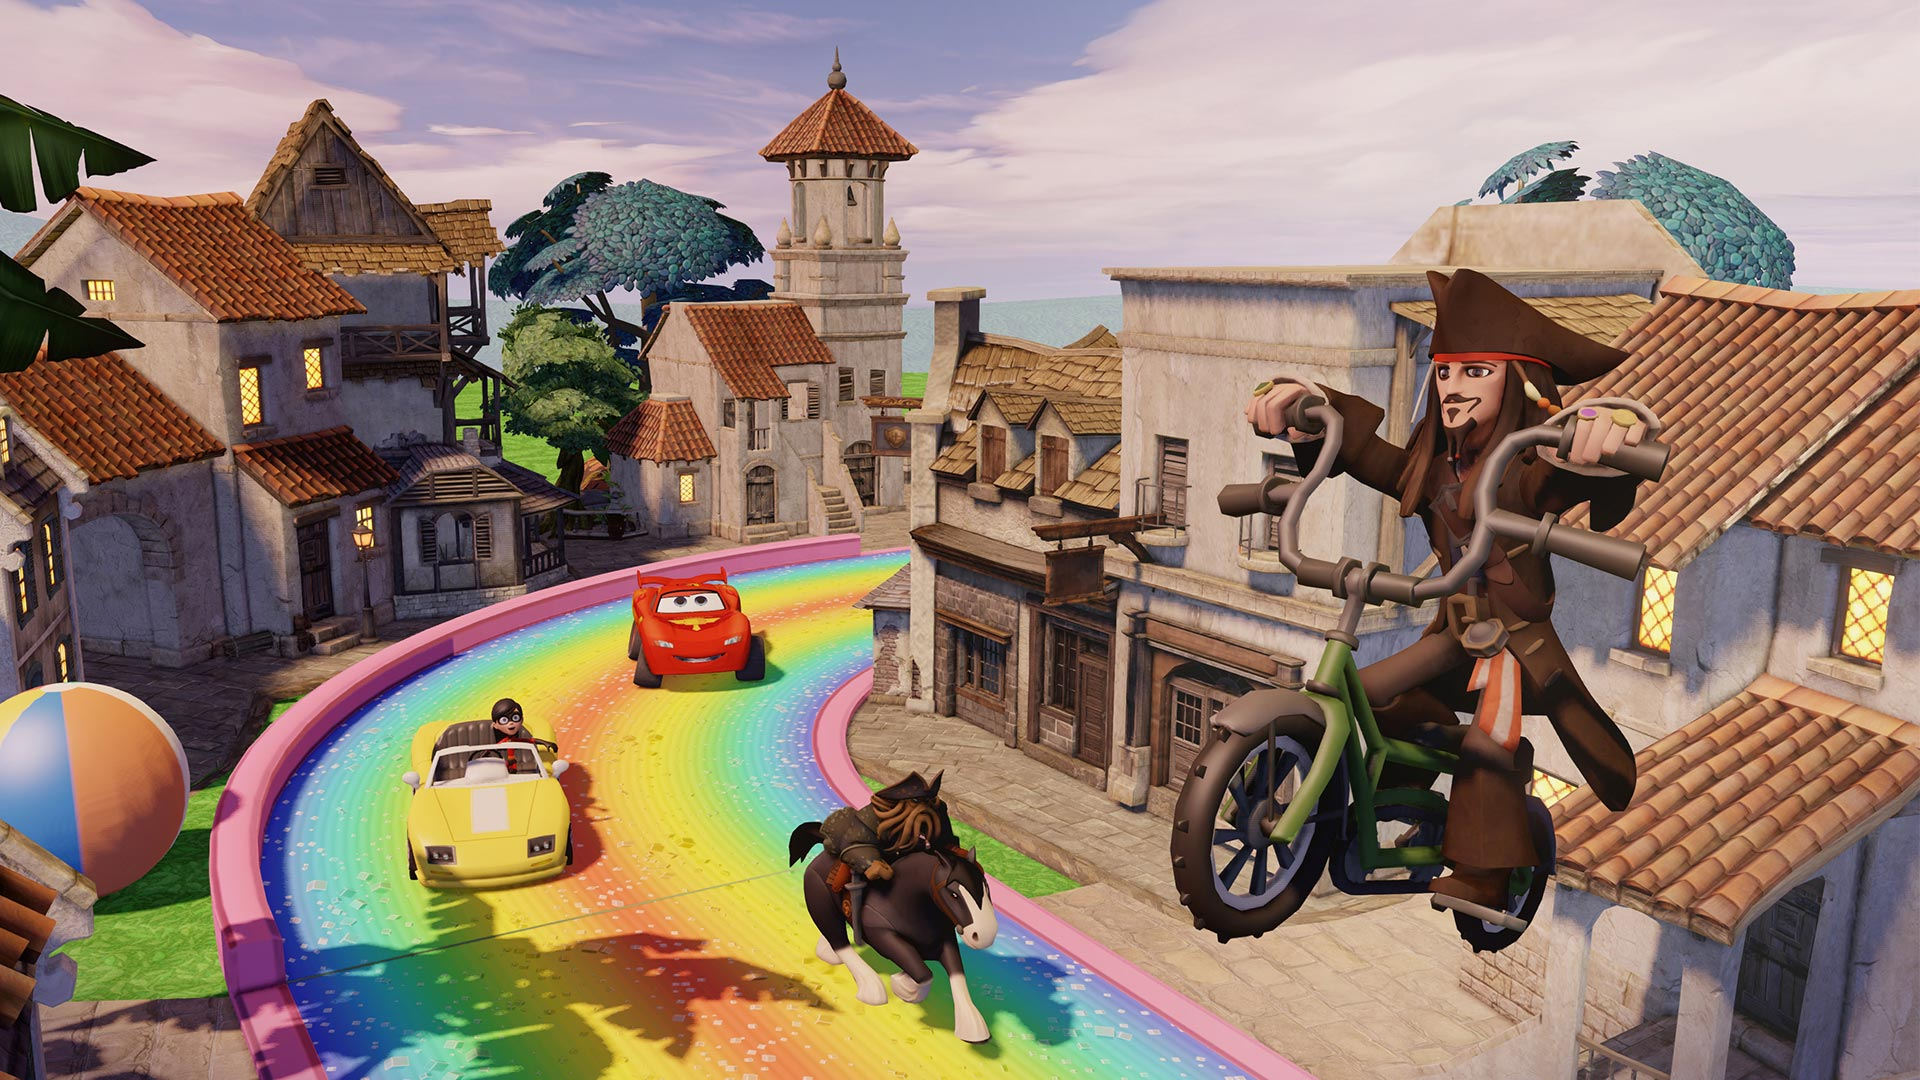 Disney Infinity is free to download on Wii U